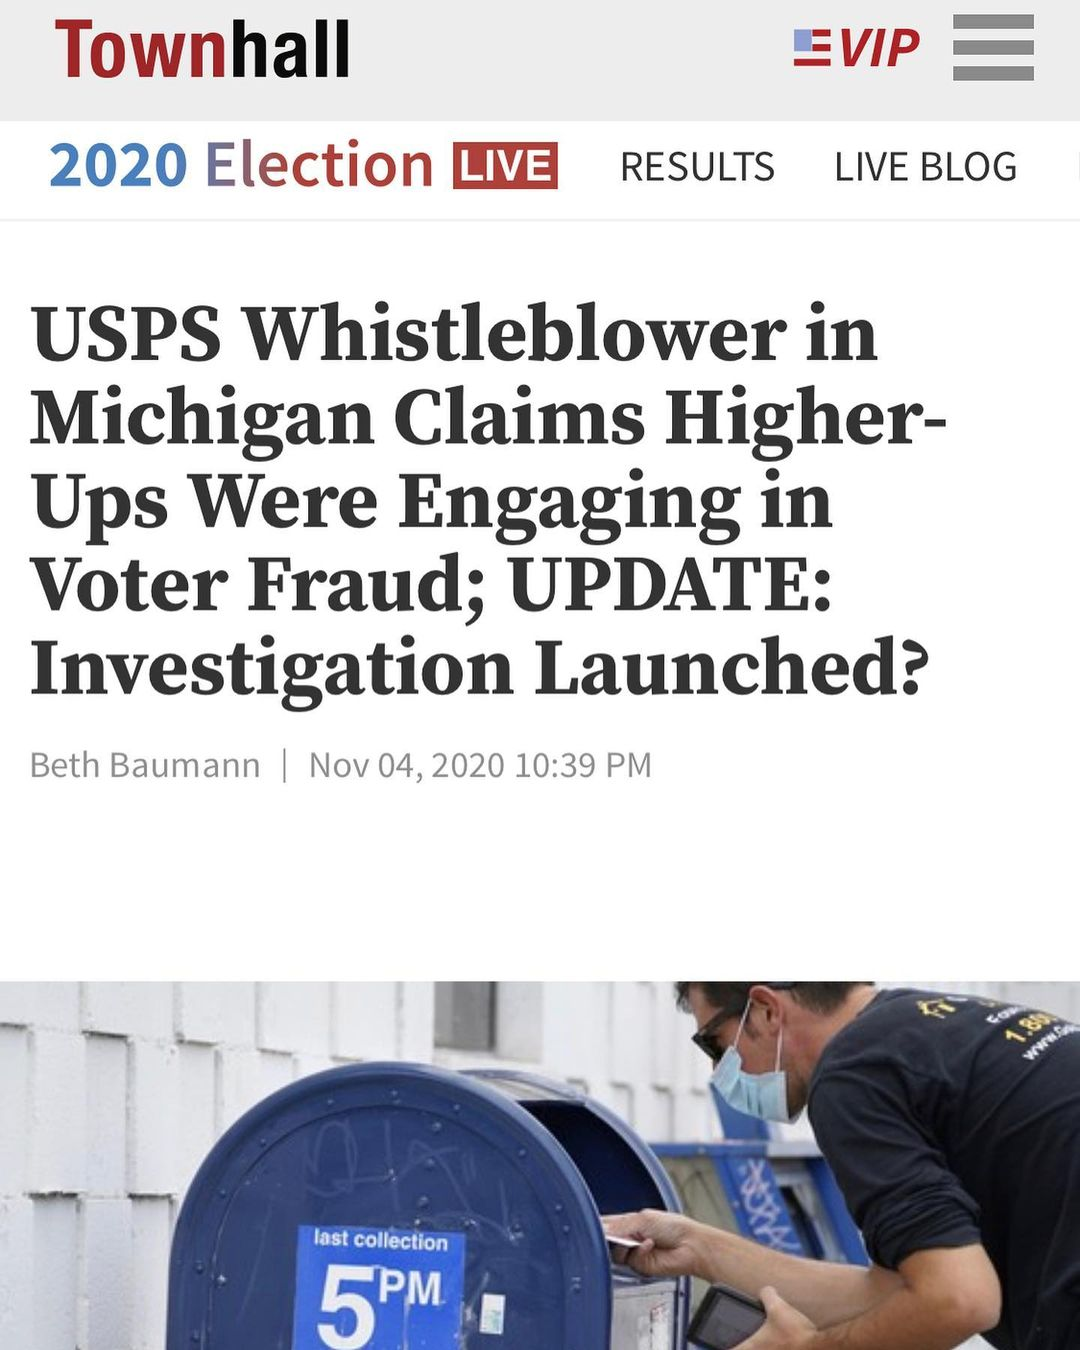 USPS Whistleblower in Michigan Claims Higher-Ups Were Engaging in Voter Fraud; UPDATE: Investigation Launched?